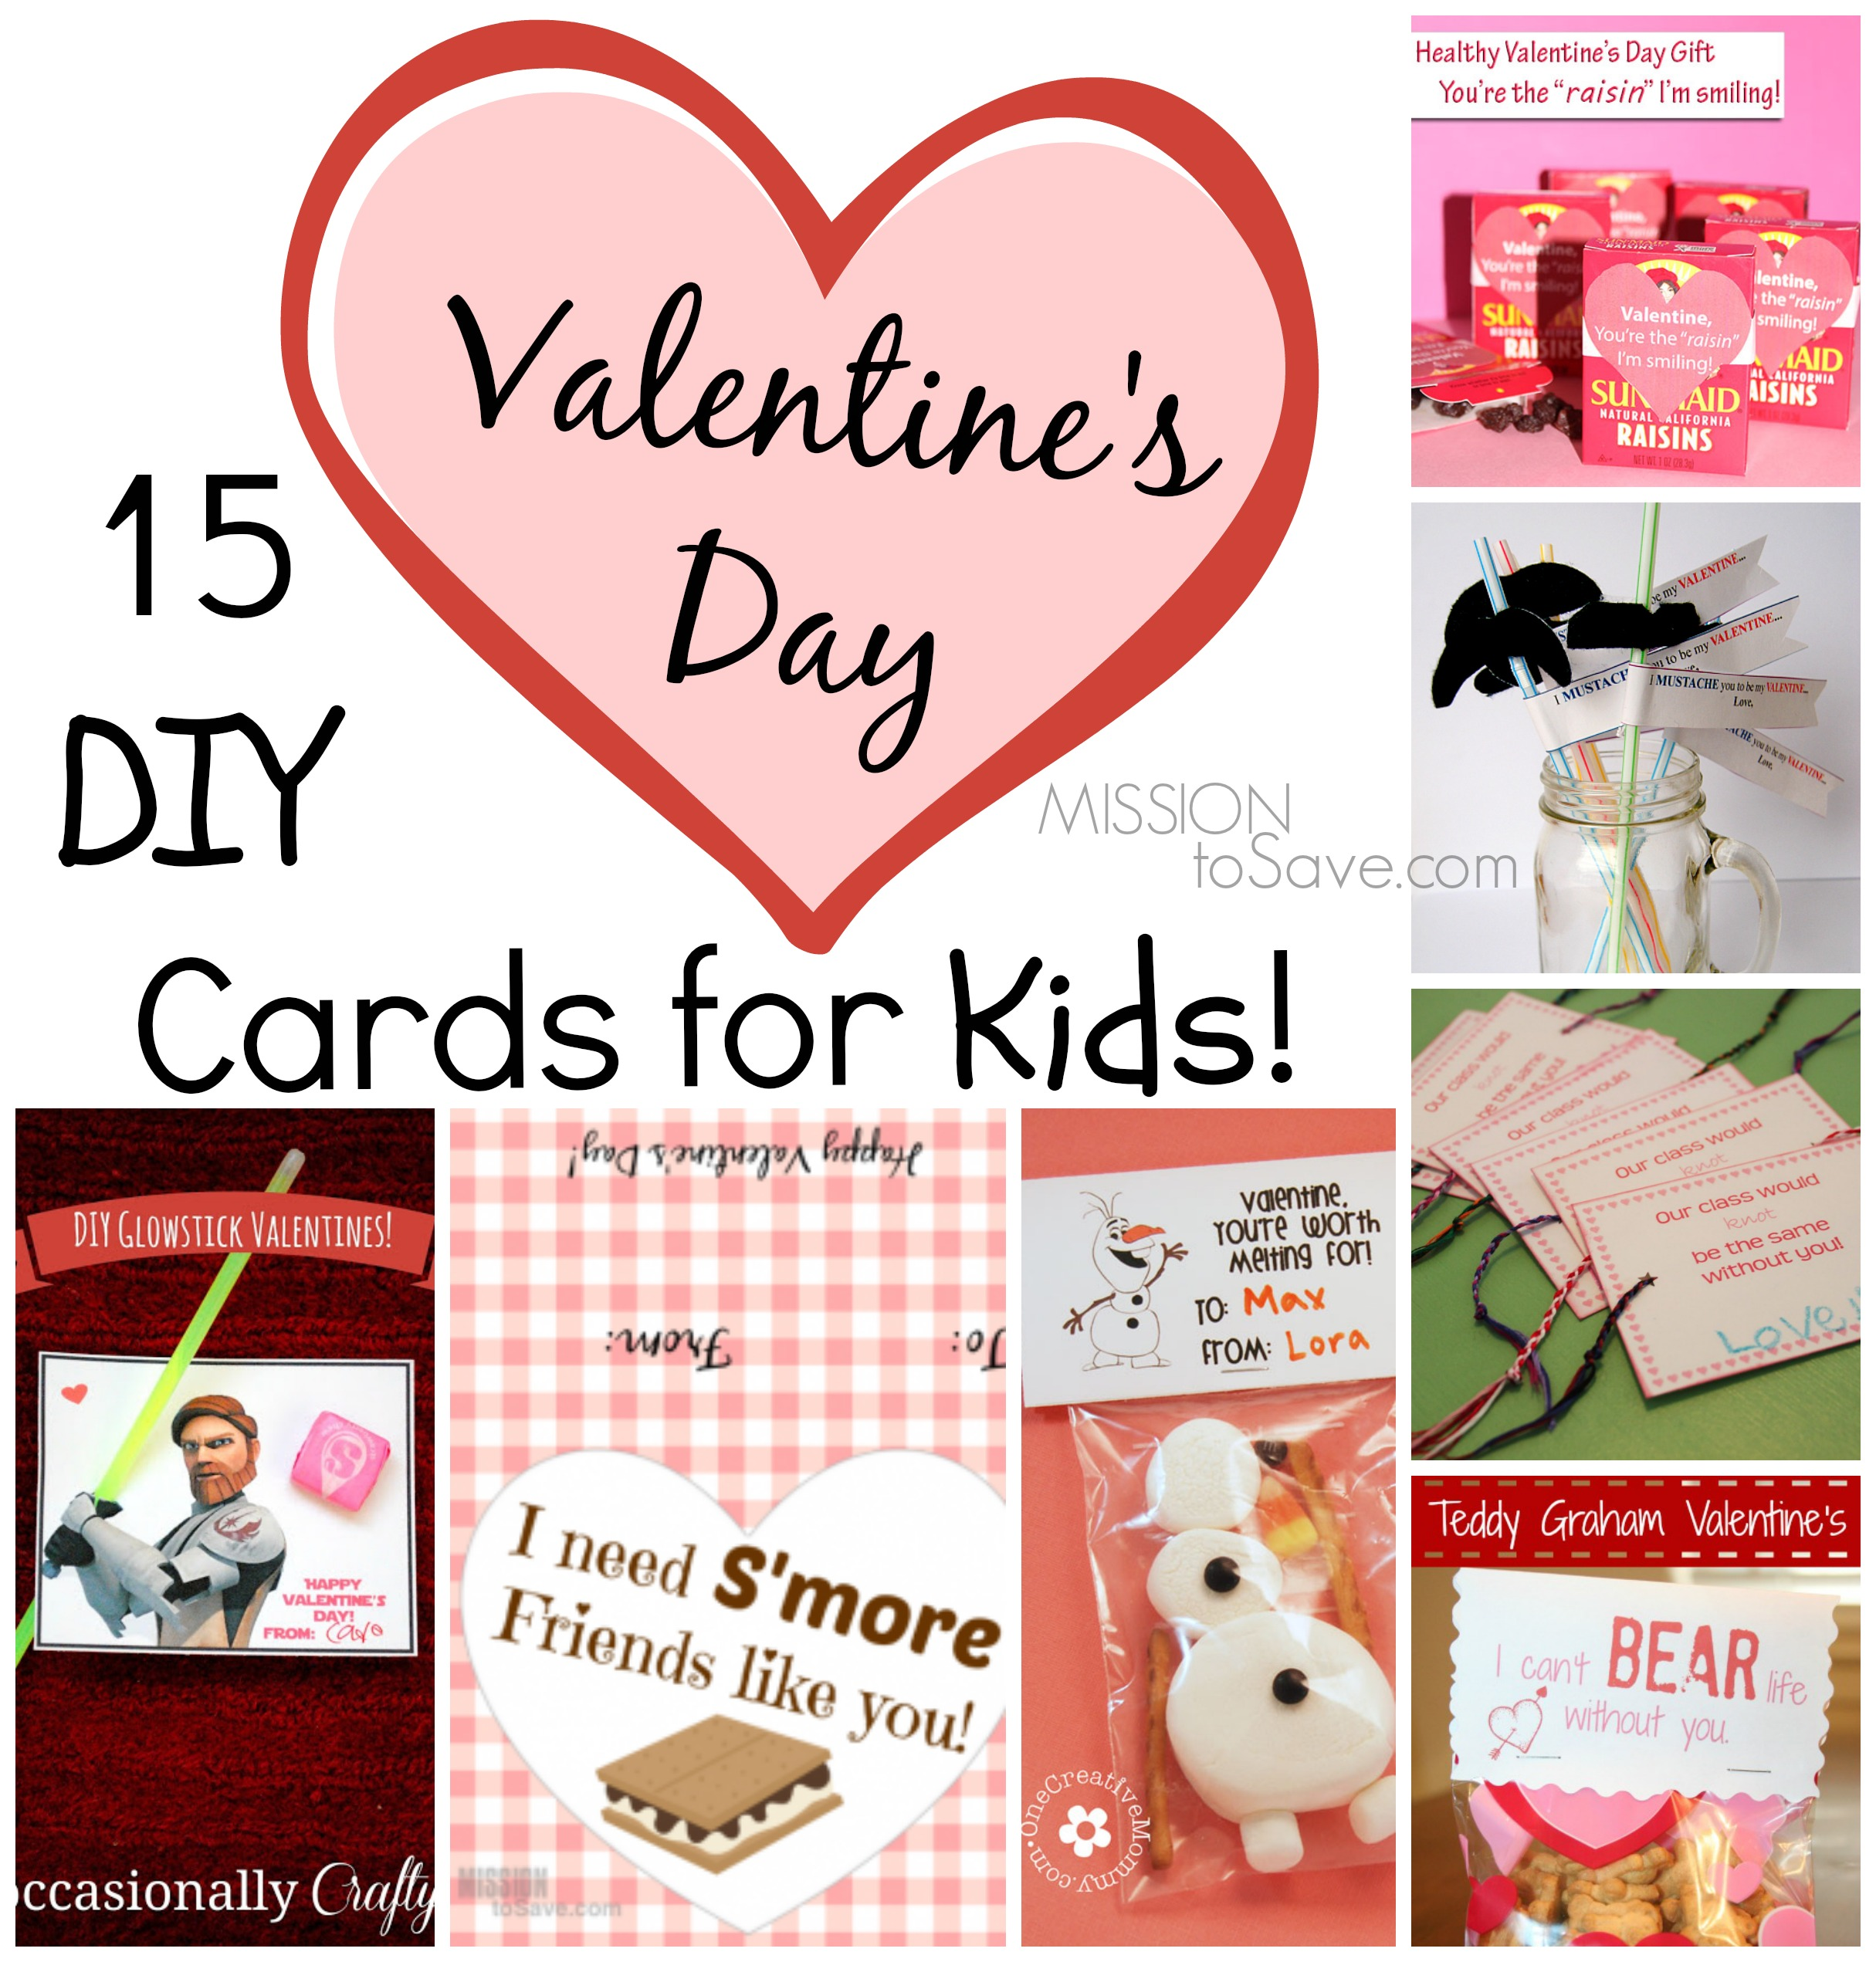 Fancy Diy Valentine Day Cards Kids To Make Valentine S Day Cards Kids Printable Kids To Save Valentine S Day Cards cards Valentines Day Cards For Kids